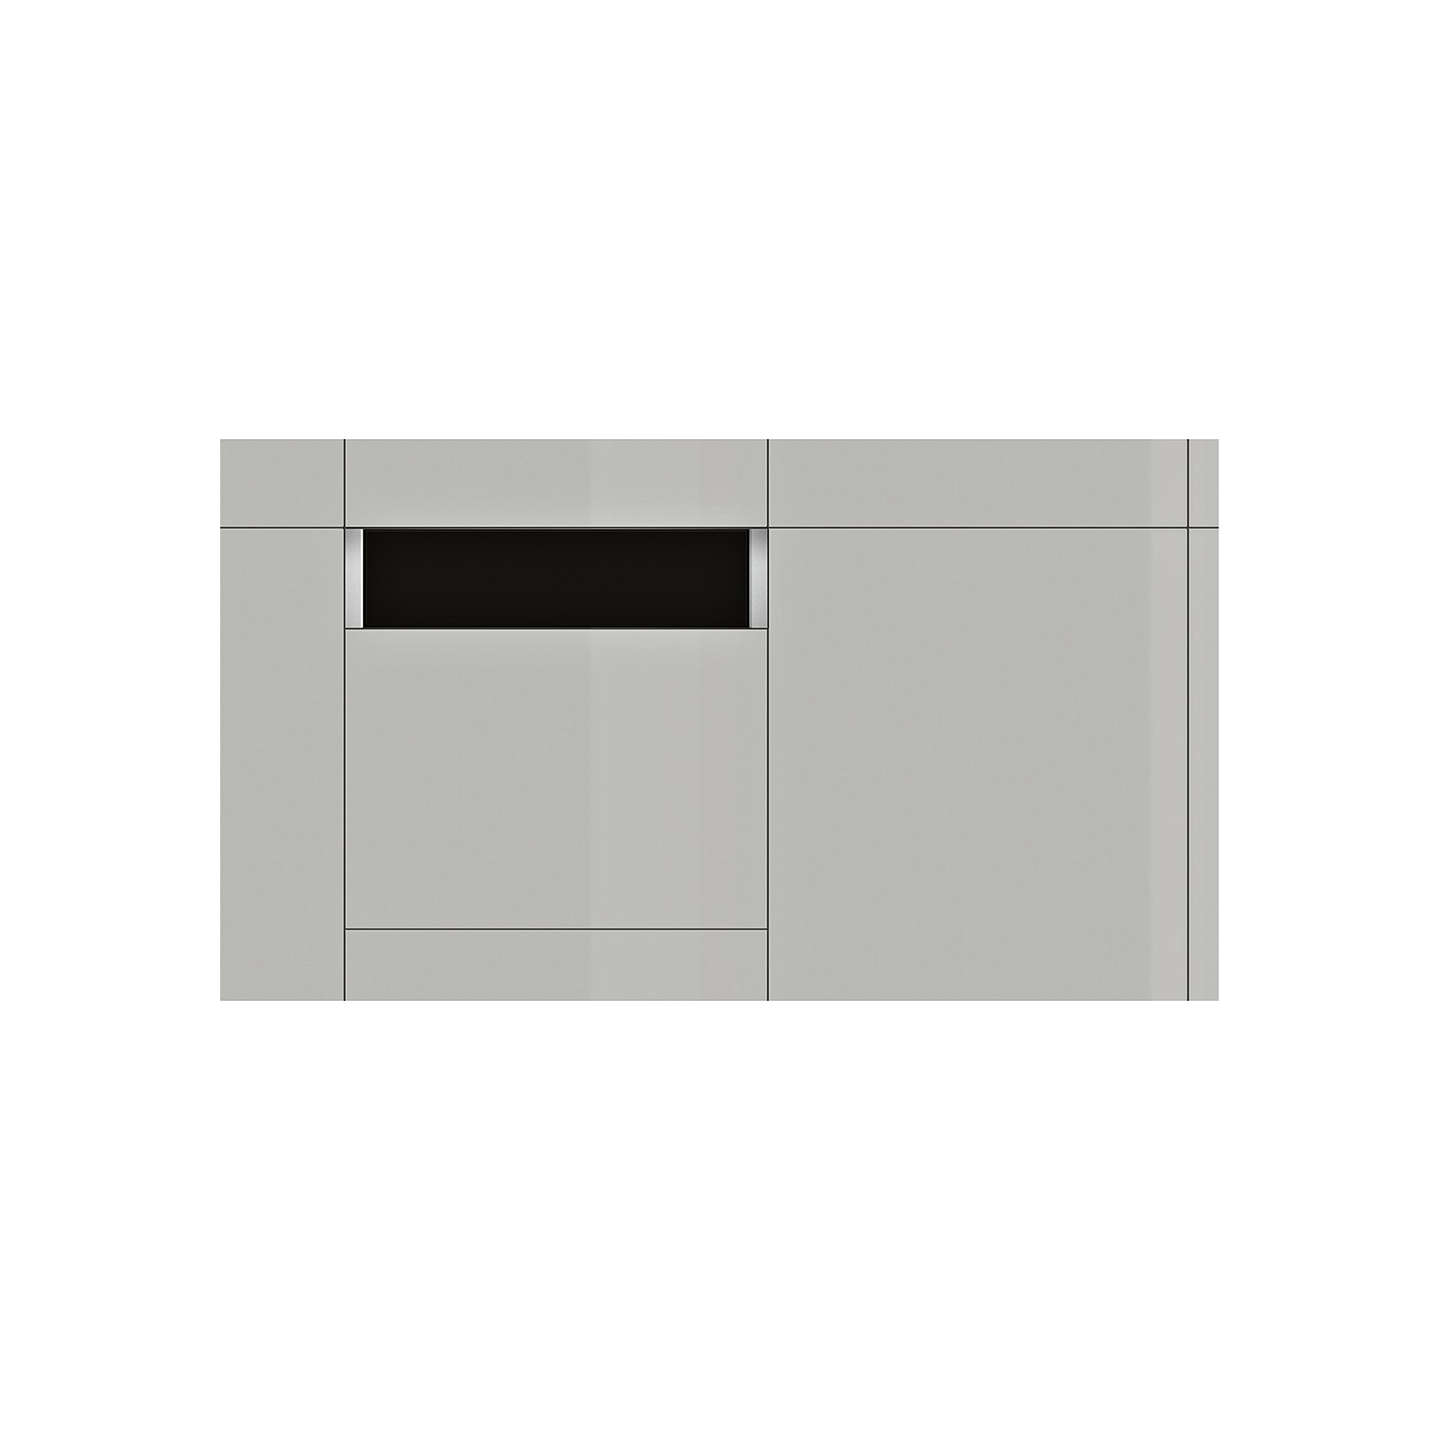 Neff N17zh10n0 Accessory Drawer Stainless Steel At John Lewis